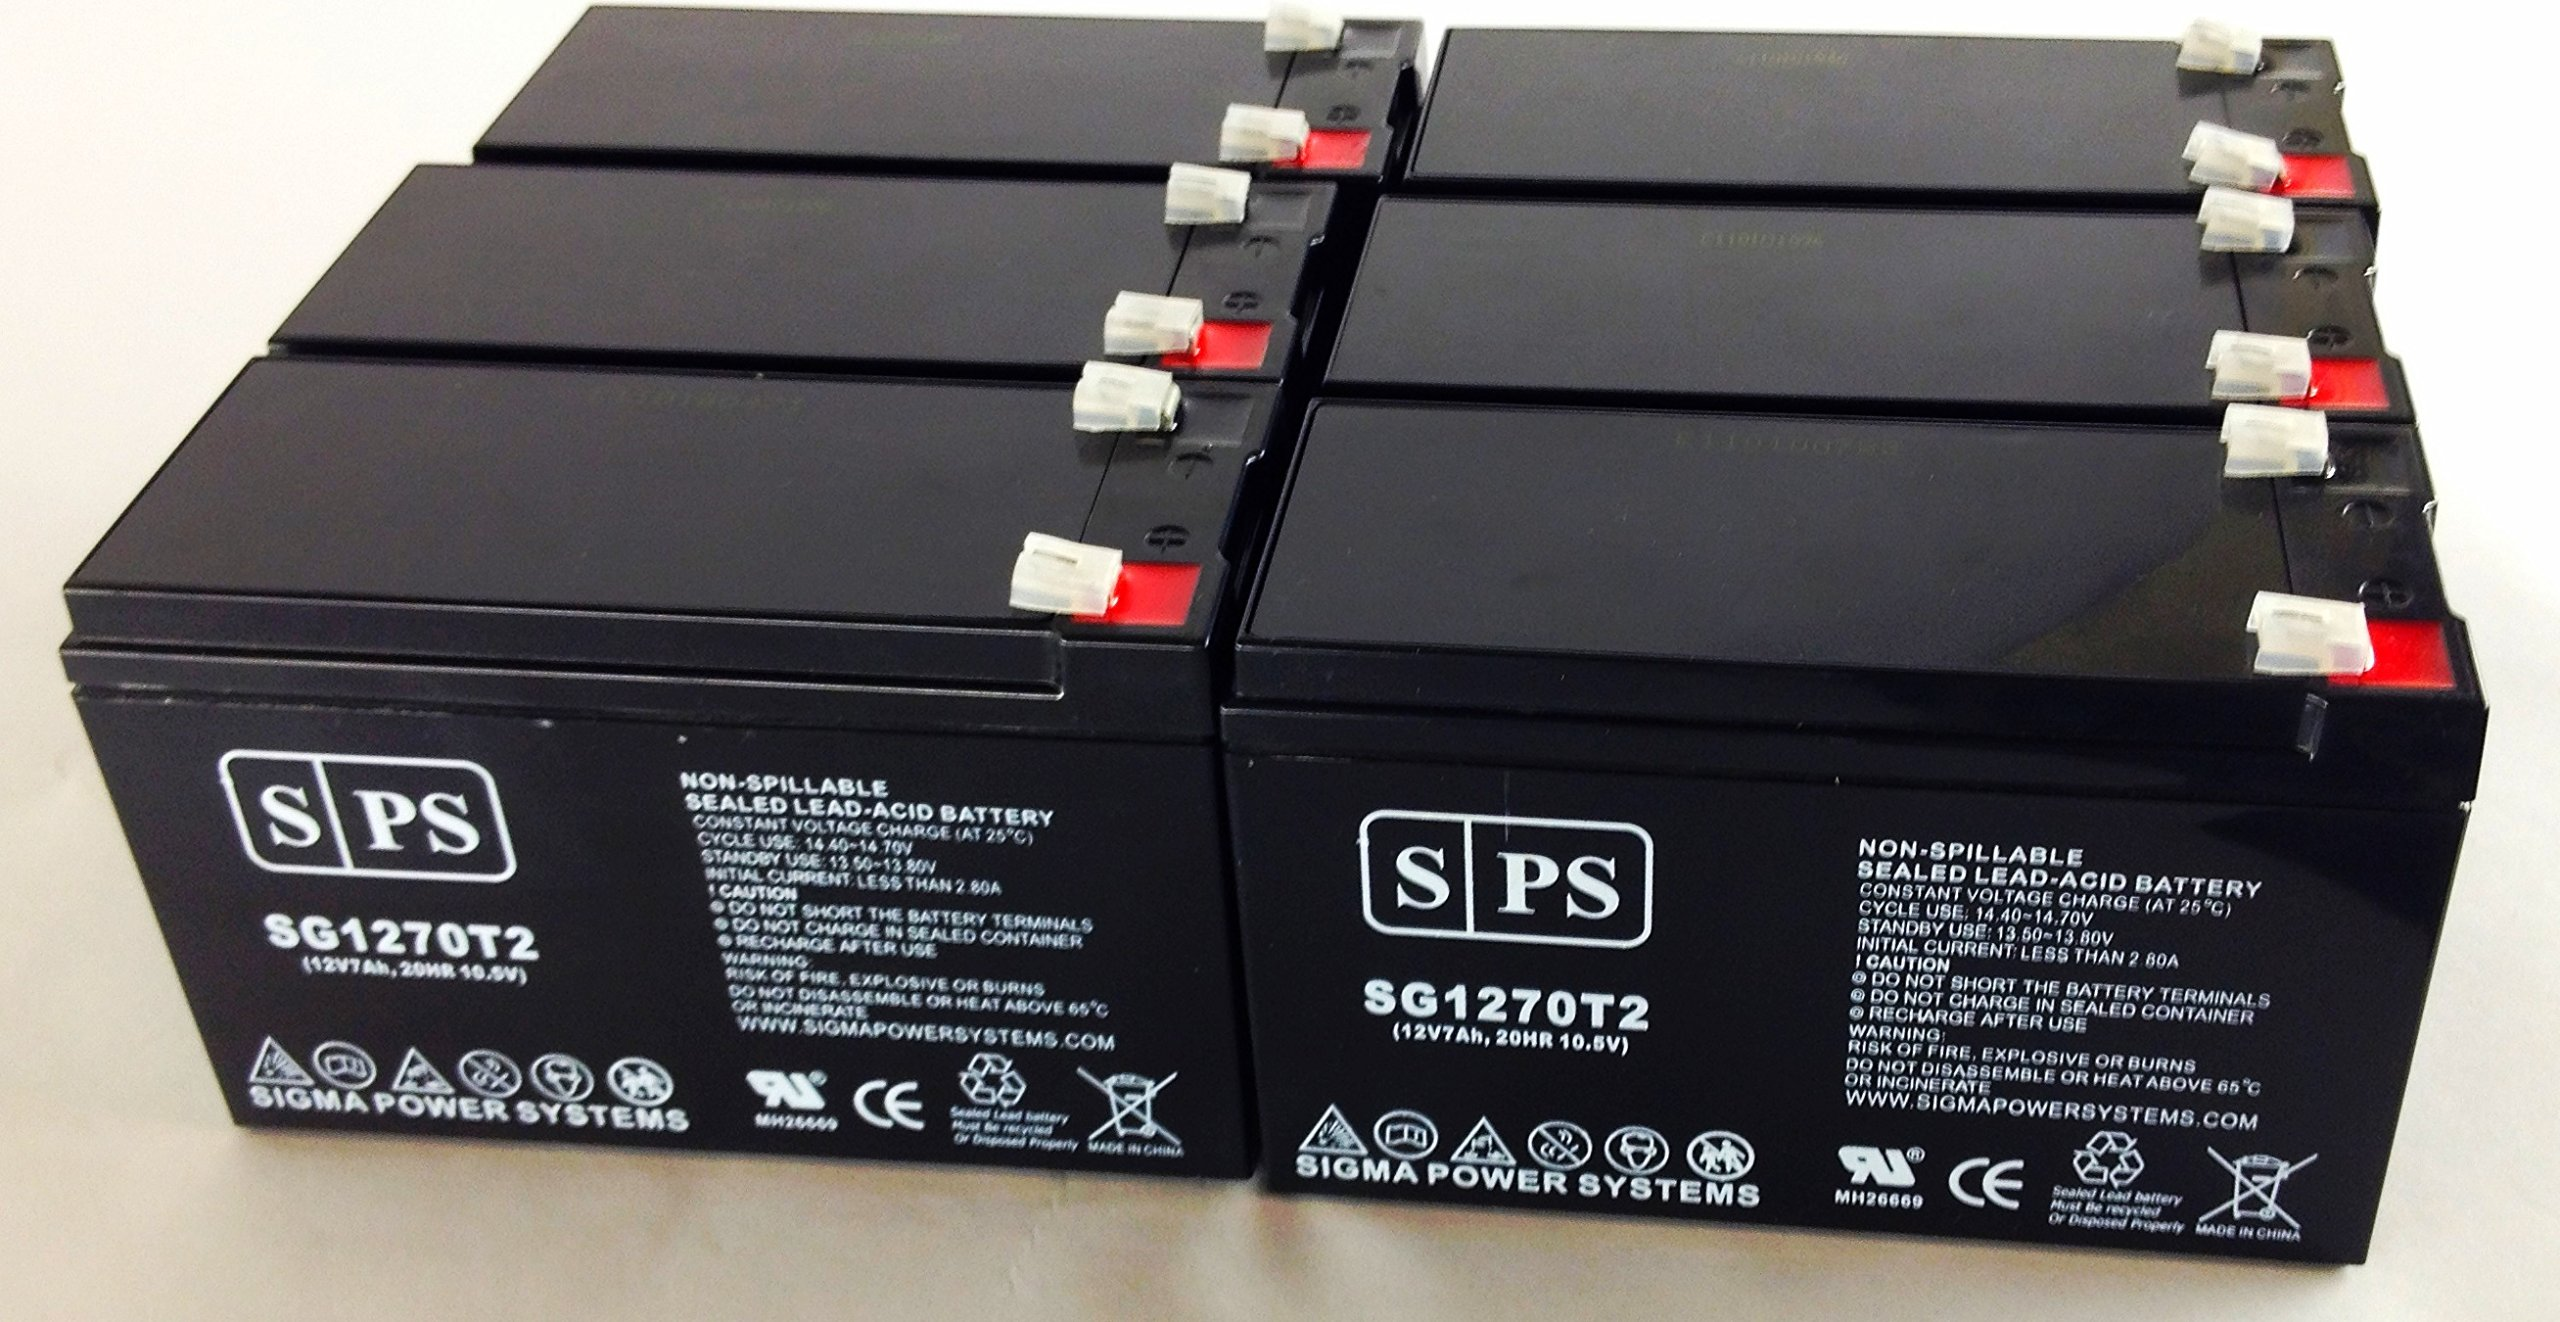 12V 7Ah (From SPS) APC BackUPS Professional PowerCell UPS Replacement Battery (6 Pack)